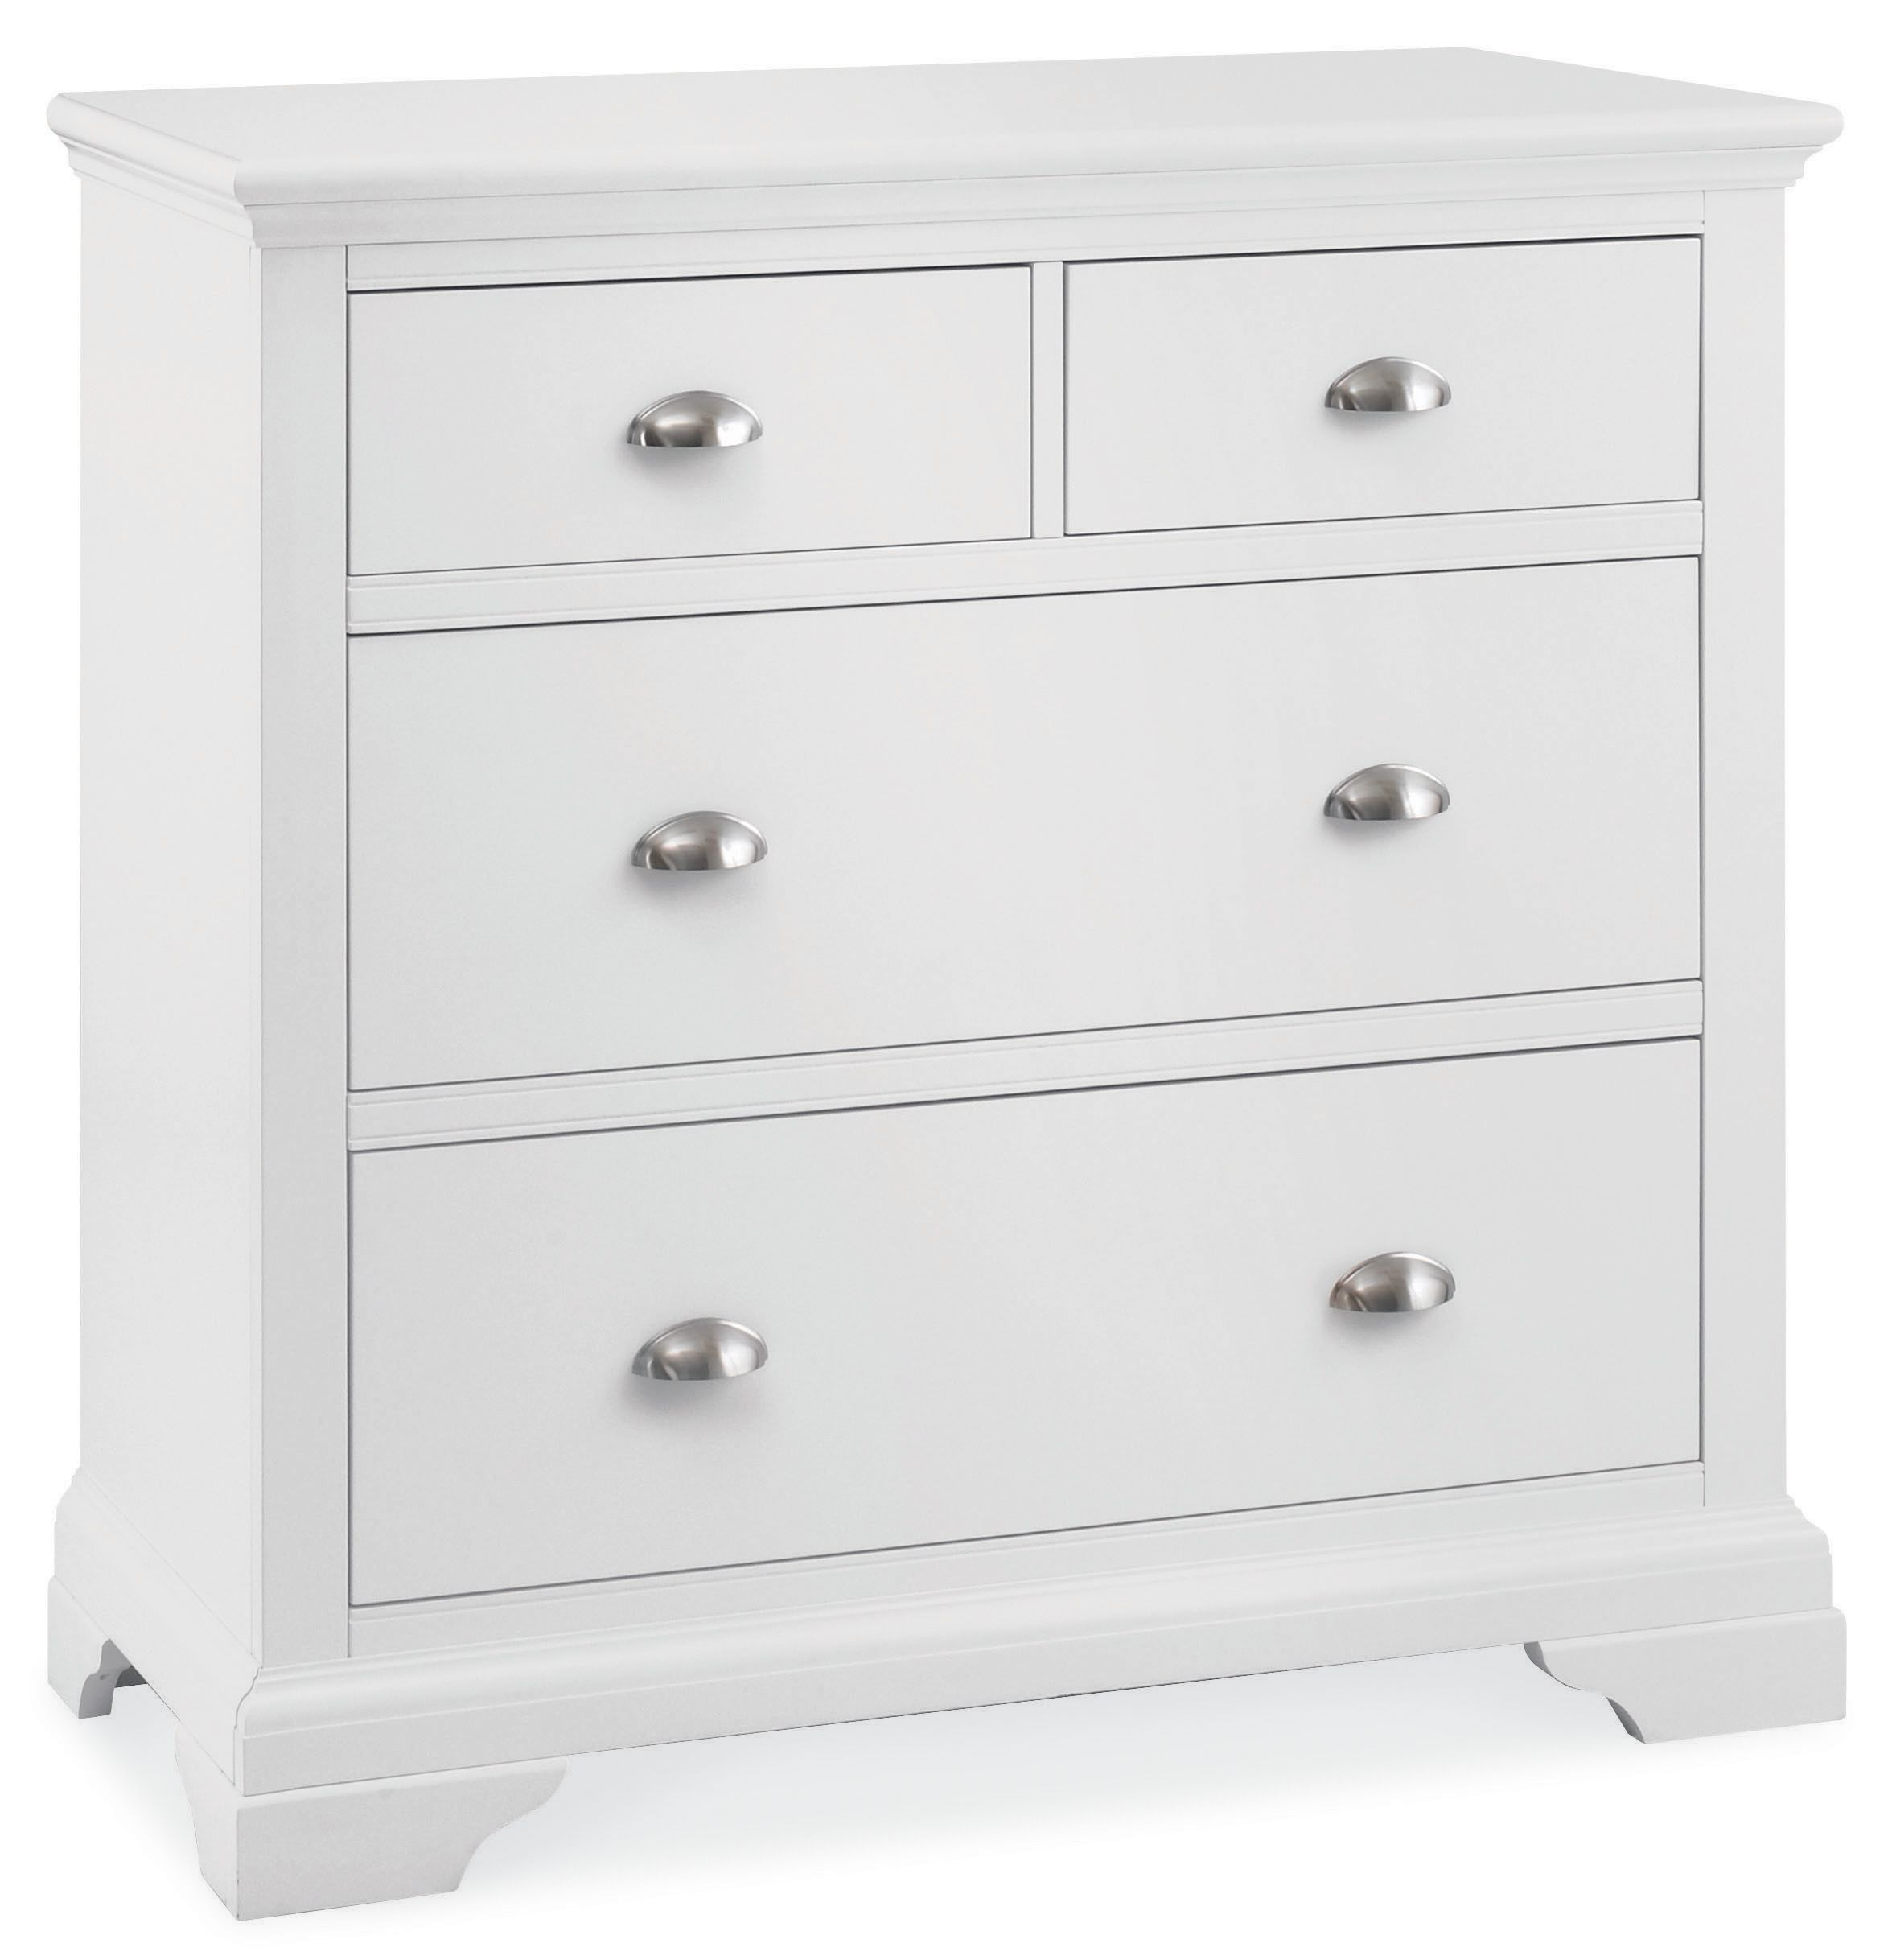 Etienne White 2+2 drawer chest